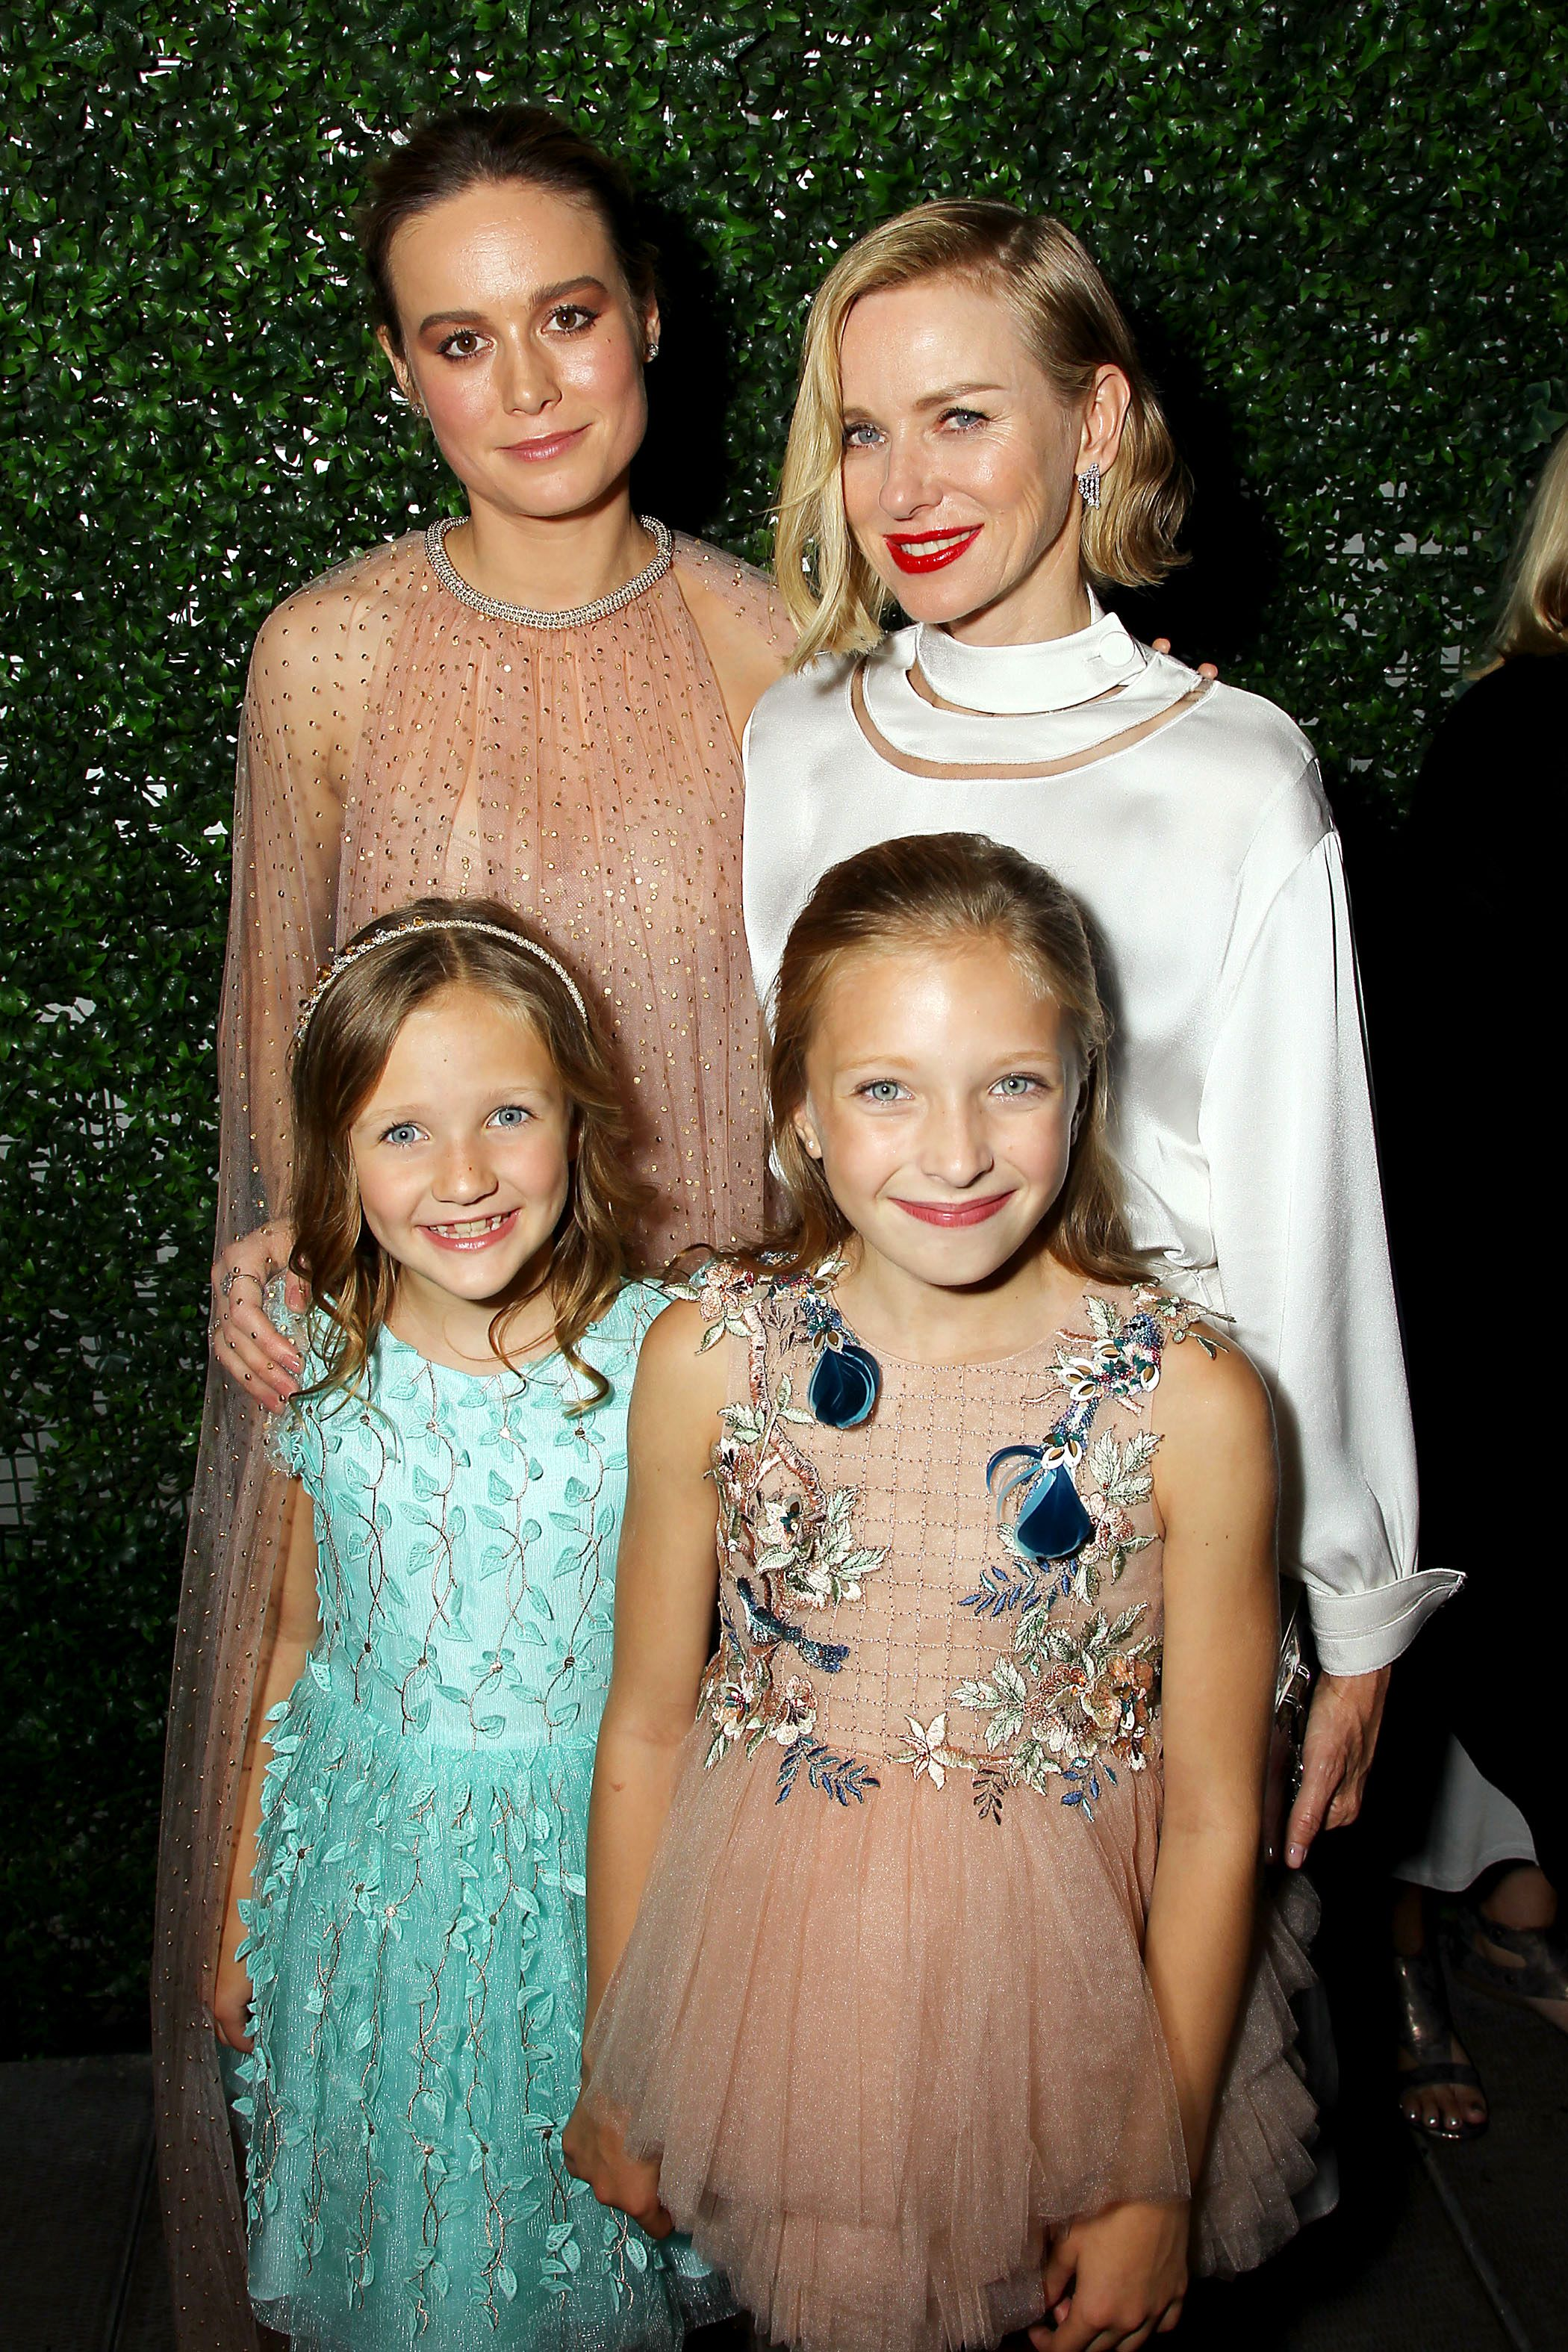 Brie Larson, Naomi Watts, Chandler Head and GuestNew York Special Screening of Lionsgate film 'The Glass Castle' - After Party at Catch New York, USA - 09 Aug 2017